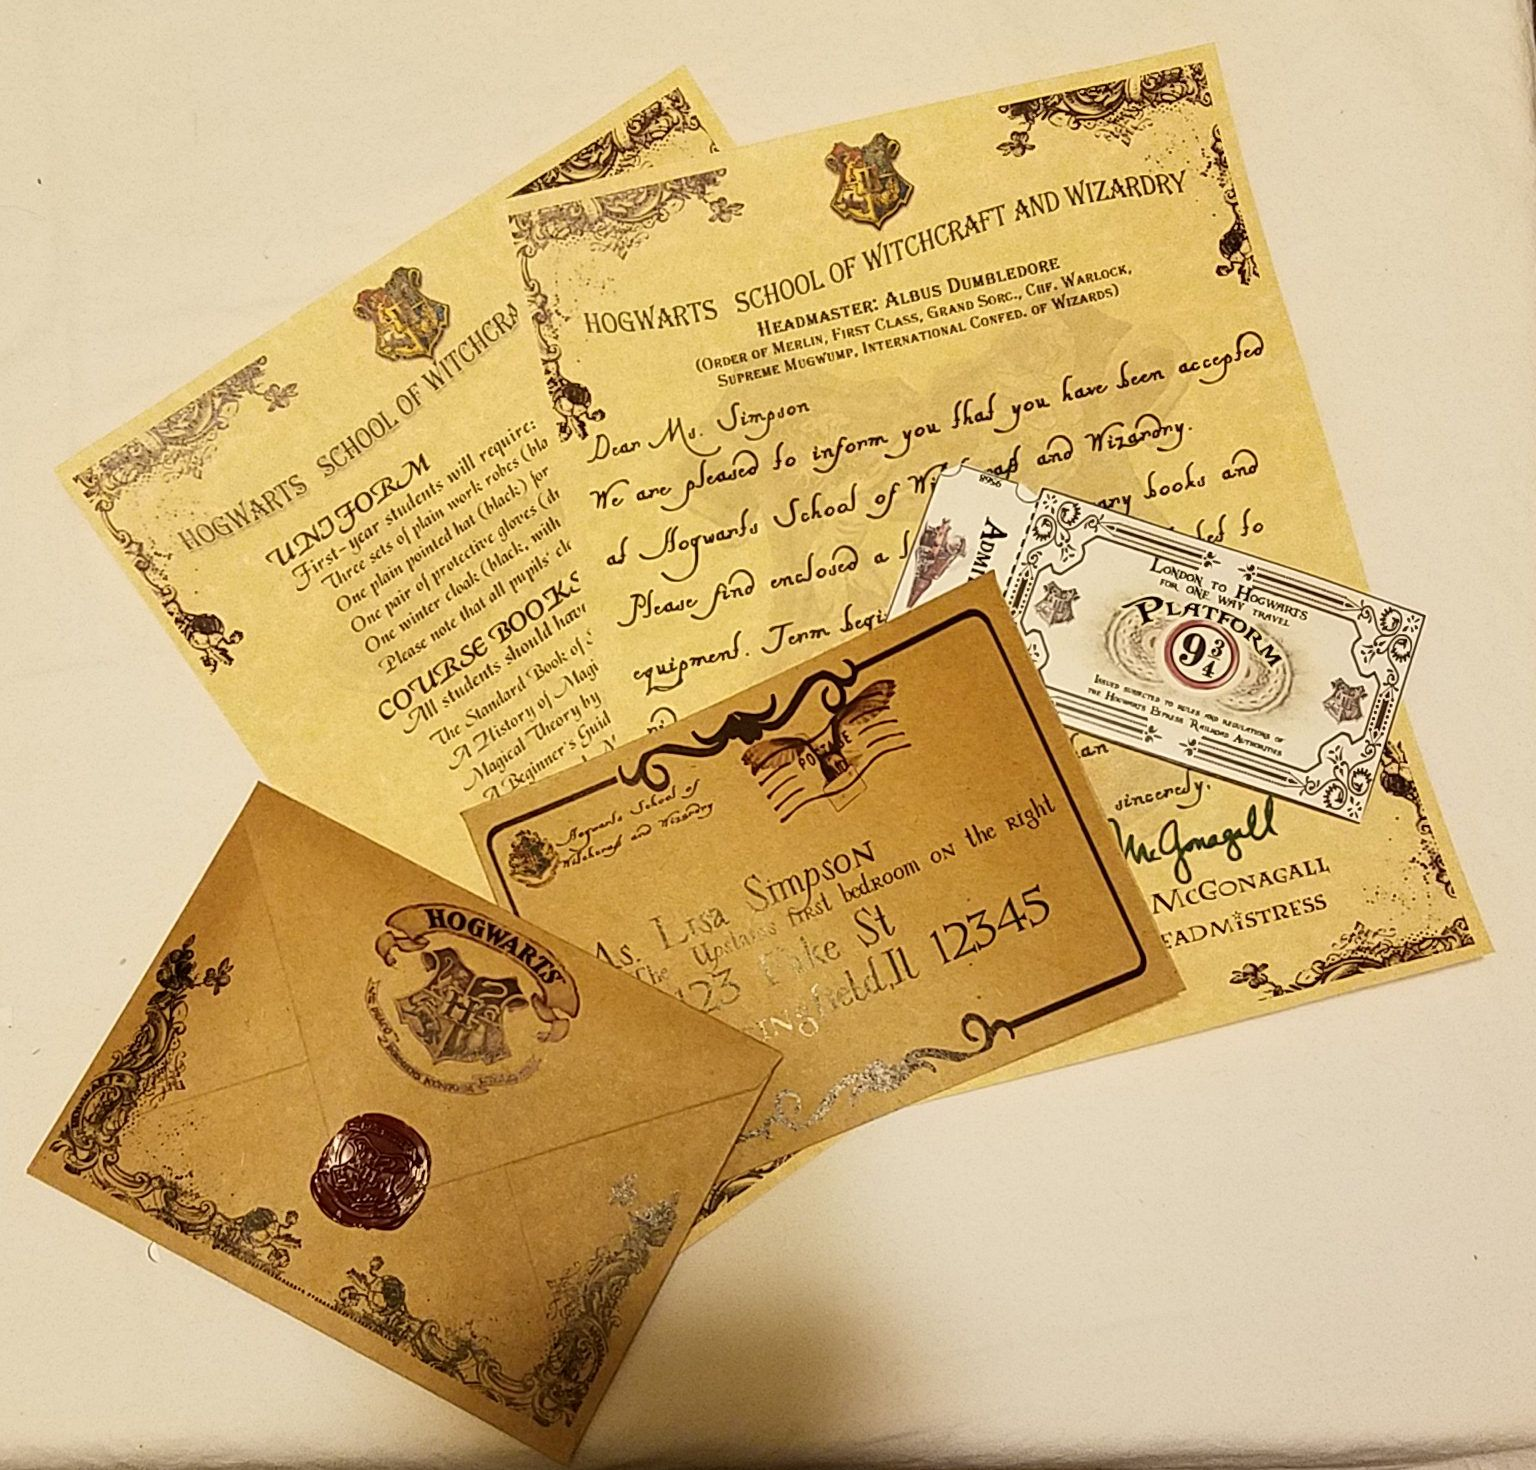 Pin by Wizarding Whatnots on Wizarding Whatnots Hogwarts